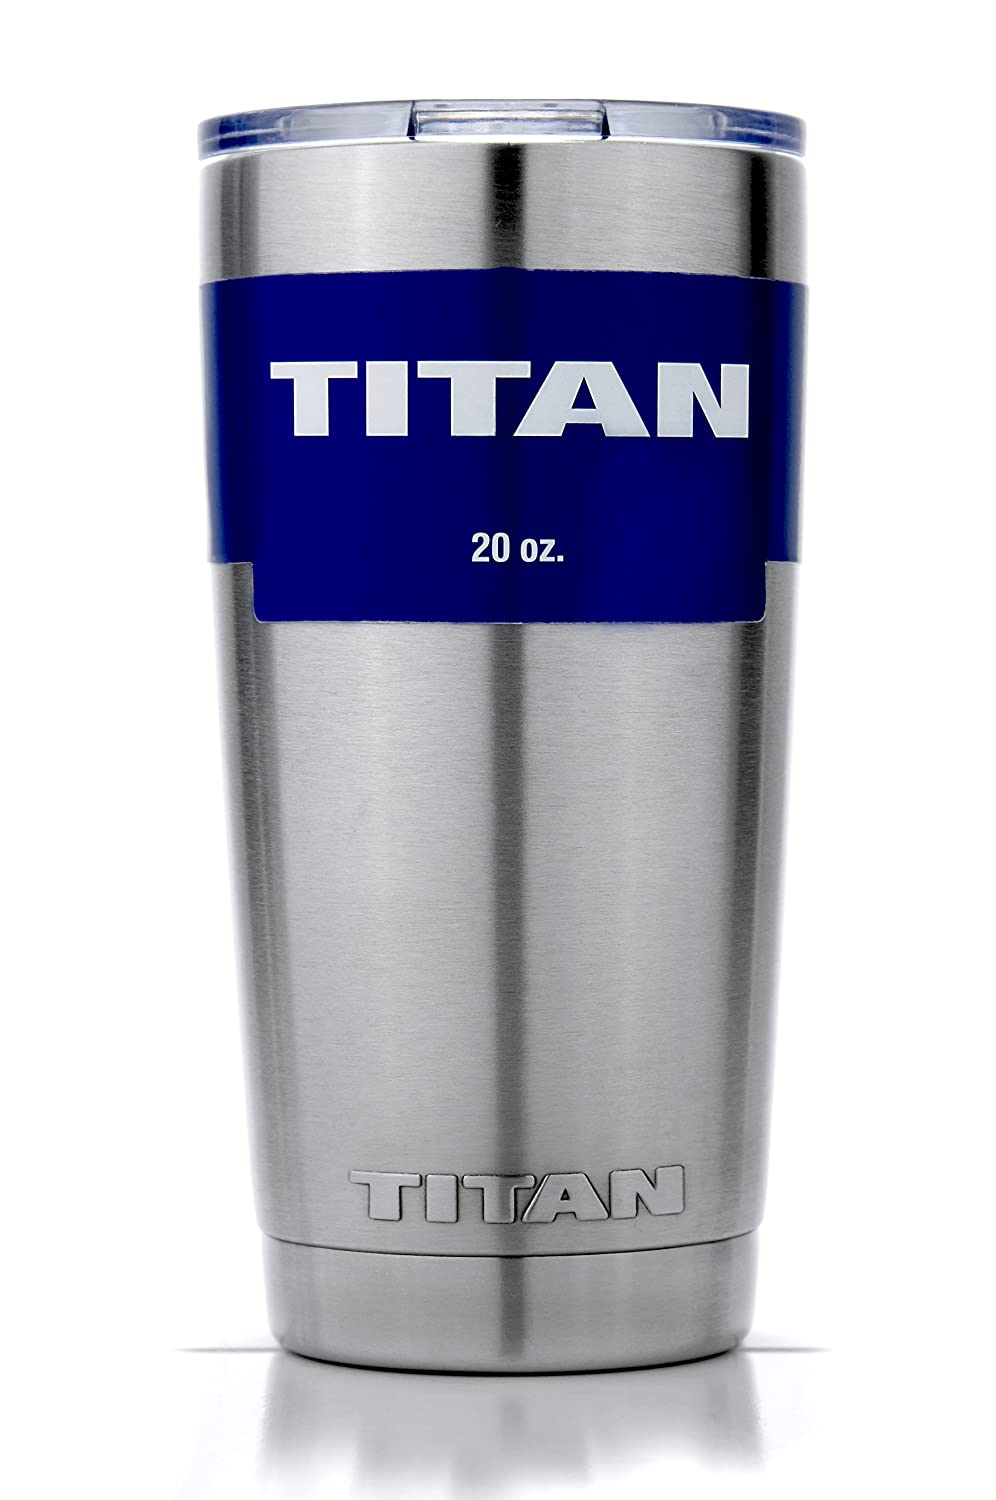 TITAN 20 oz. Premium Grade Stainless Steel Double Wall Vacuum Insulated Travel Tumbler Cup - Keeps COLD & HOT